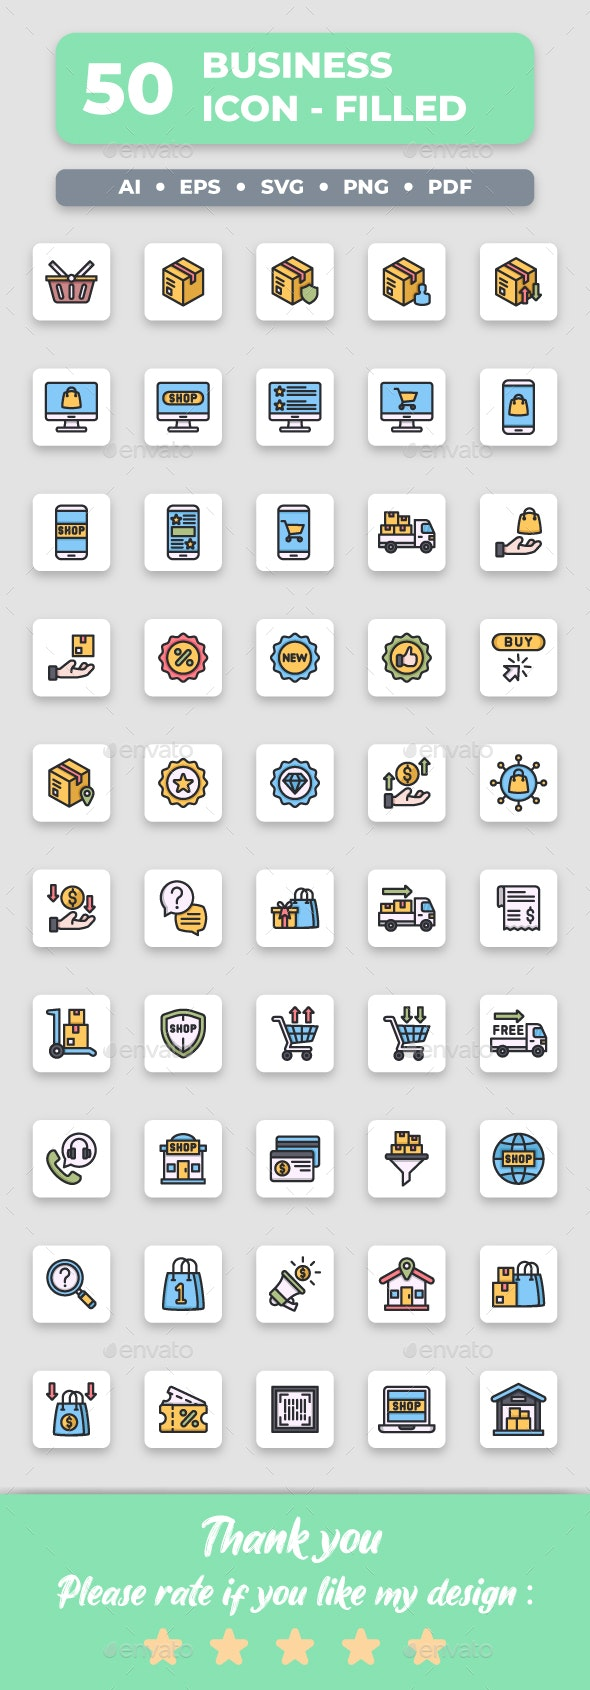 Ecommerce - Filled Collection Icon Set - Business Icons